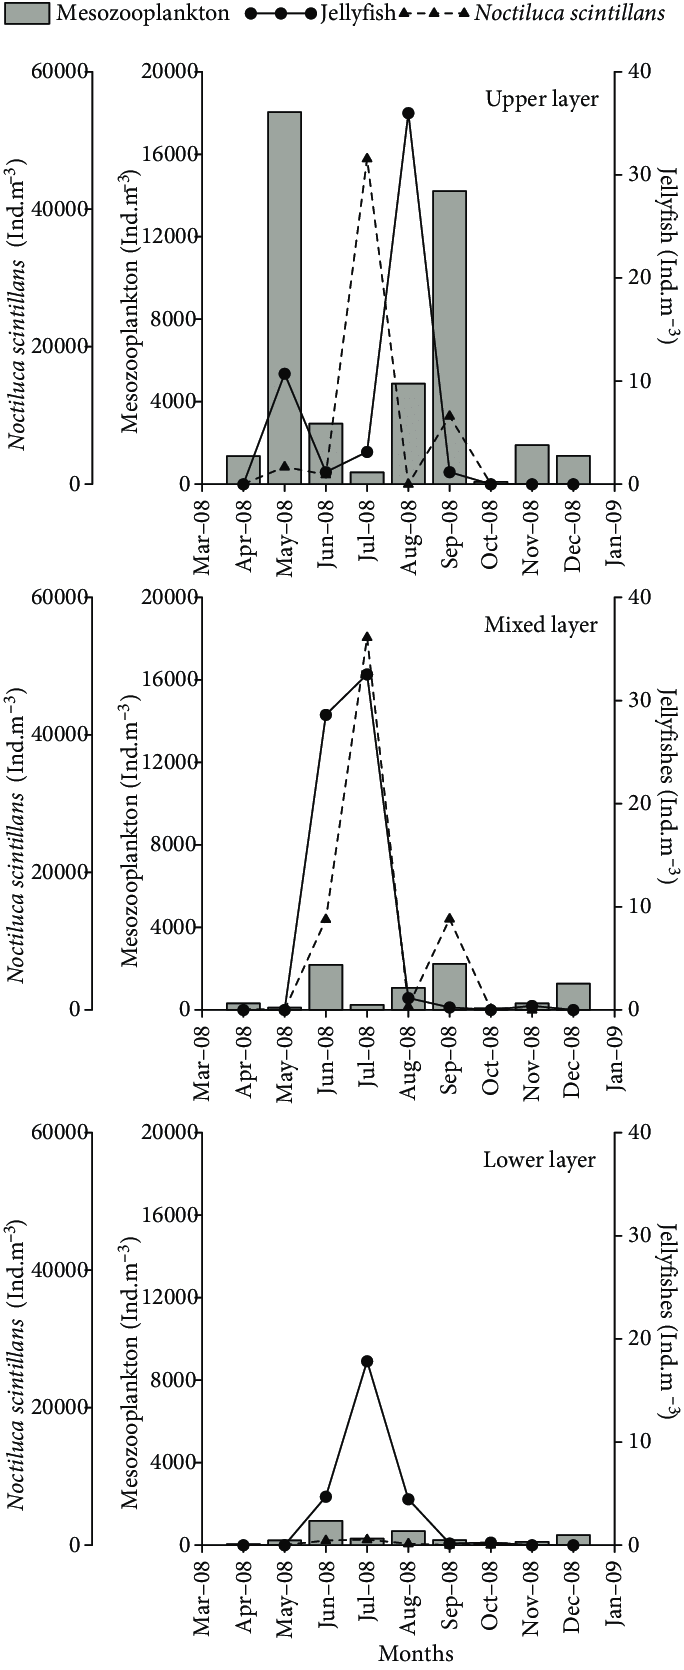 medium resolution of fluctuations in total abundance of mesozooplankton noctiluca scintillans and jellyfish in the upper mixed